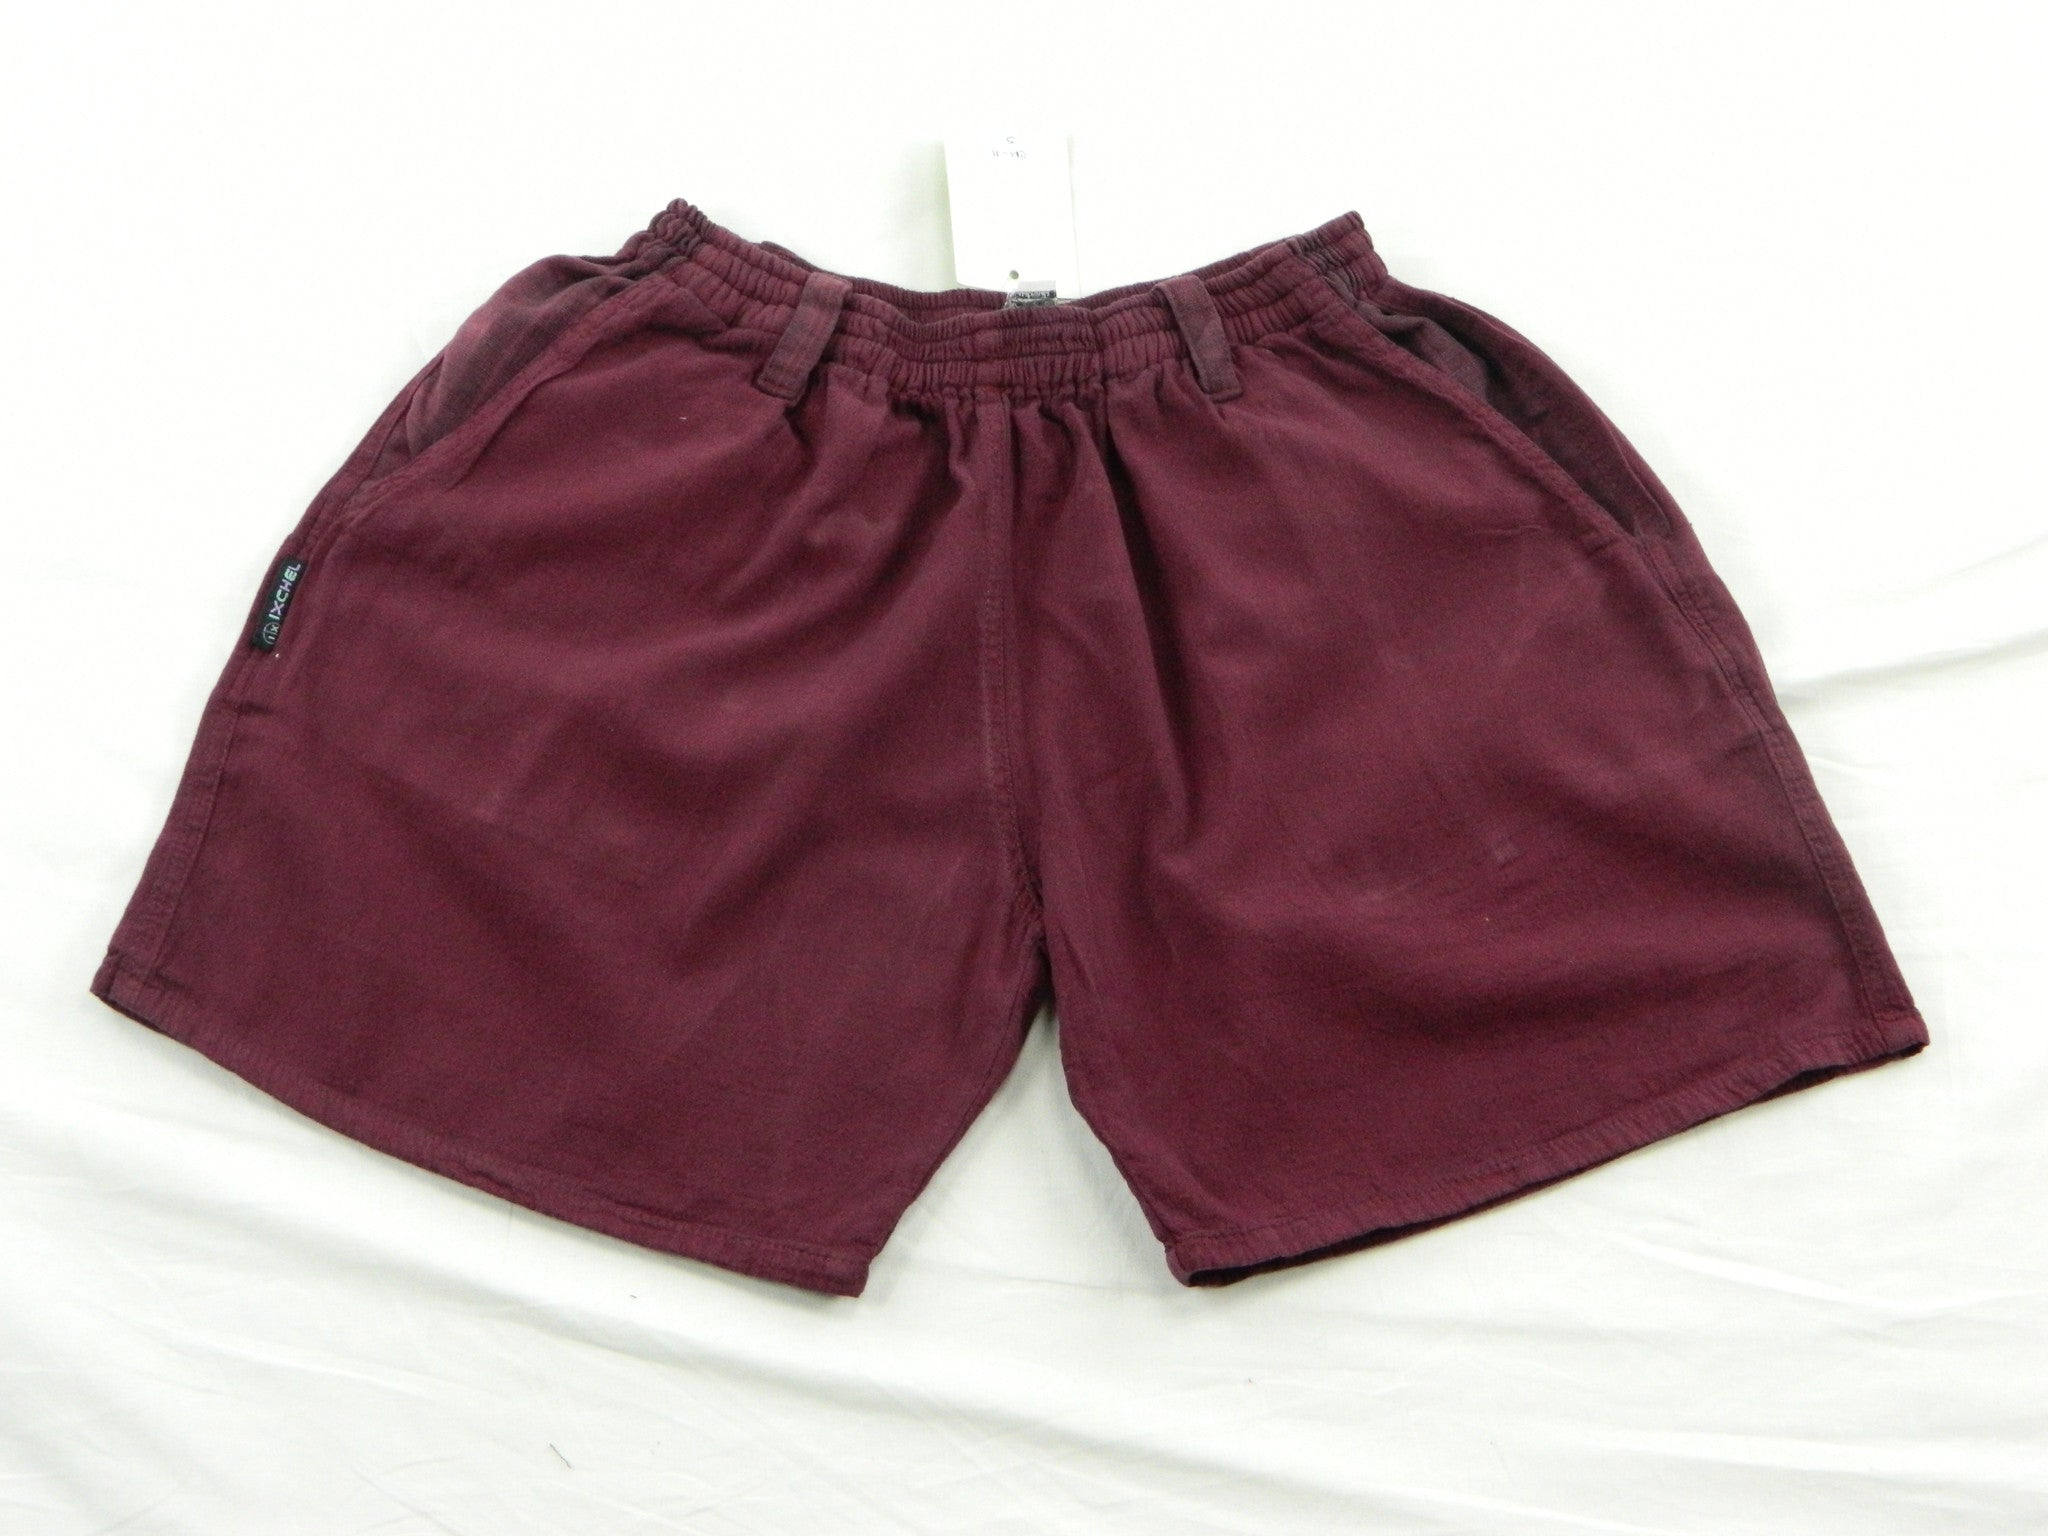 Women's shorts in garment dyed cotton short